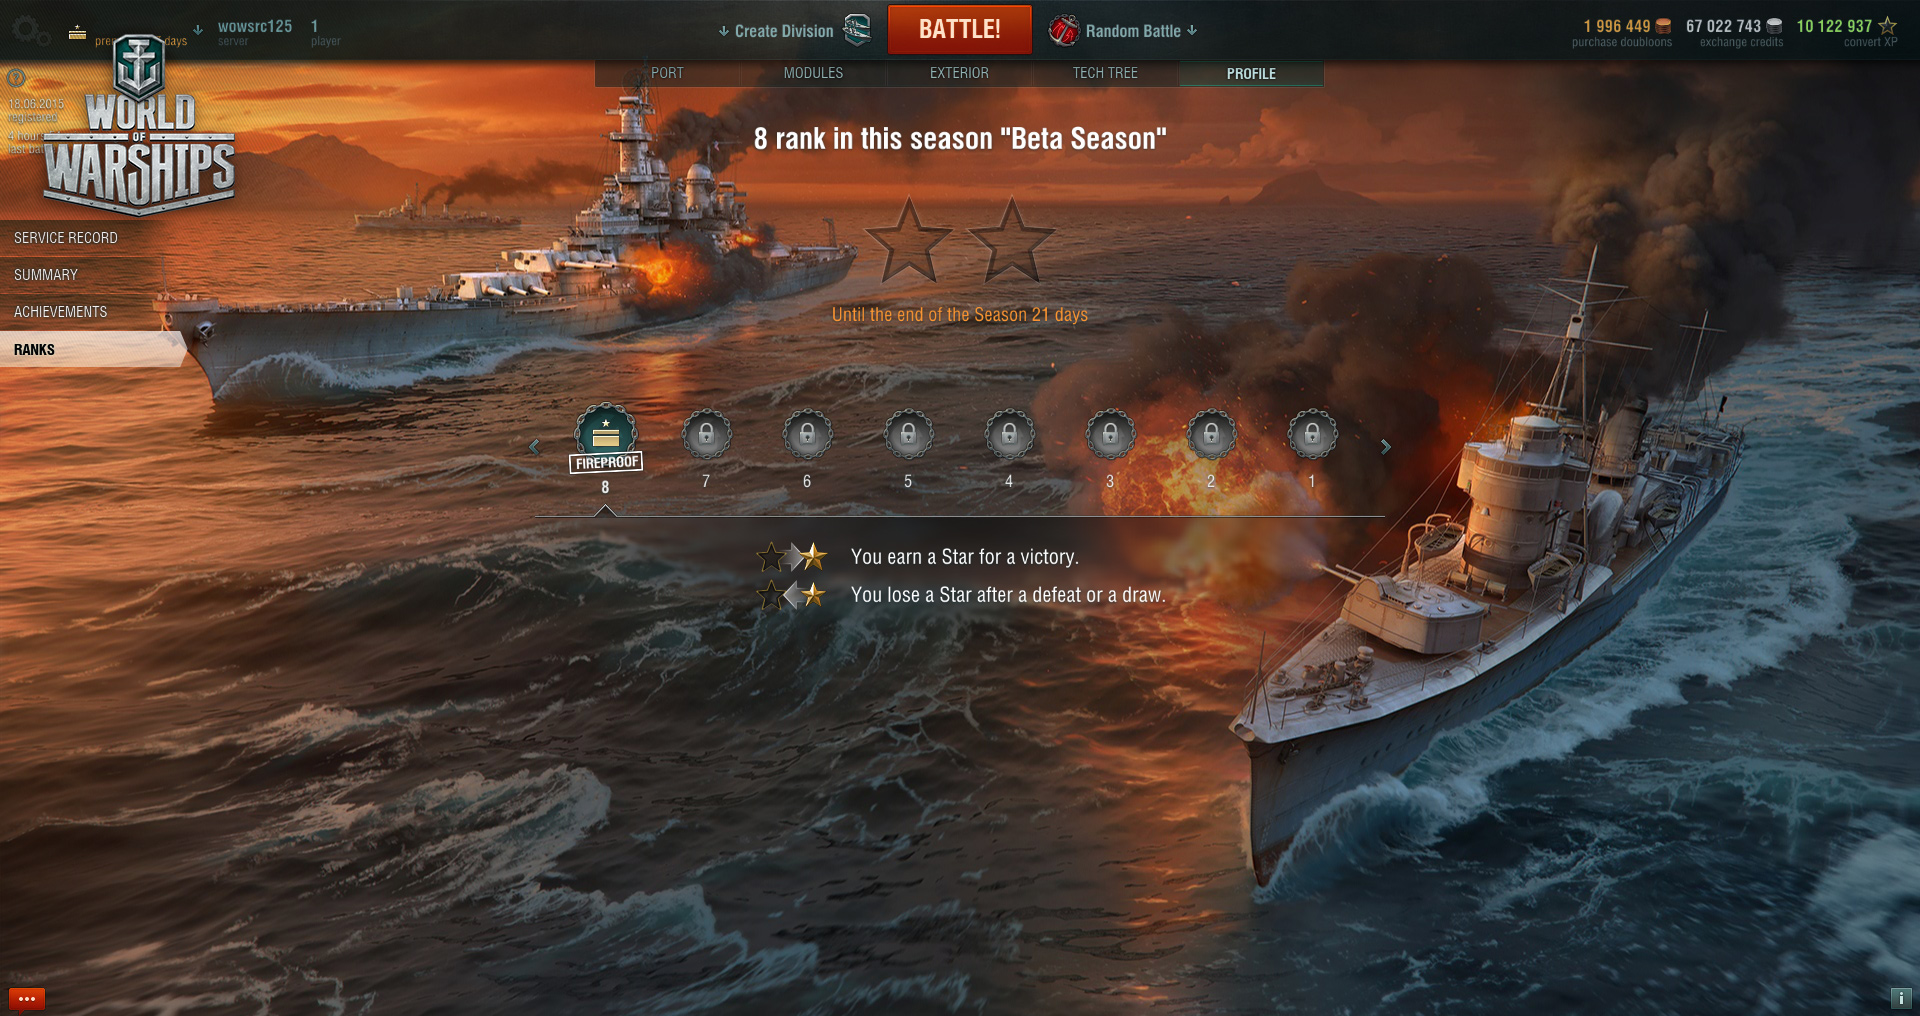 World-of-Warships-Wargaming-Update-0.4.1-Ranked-Battles